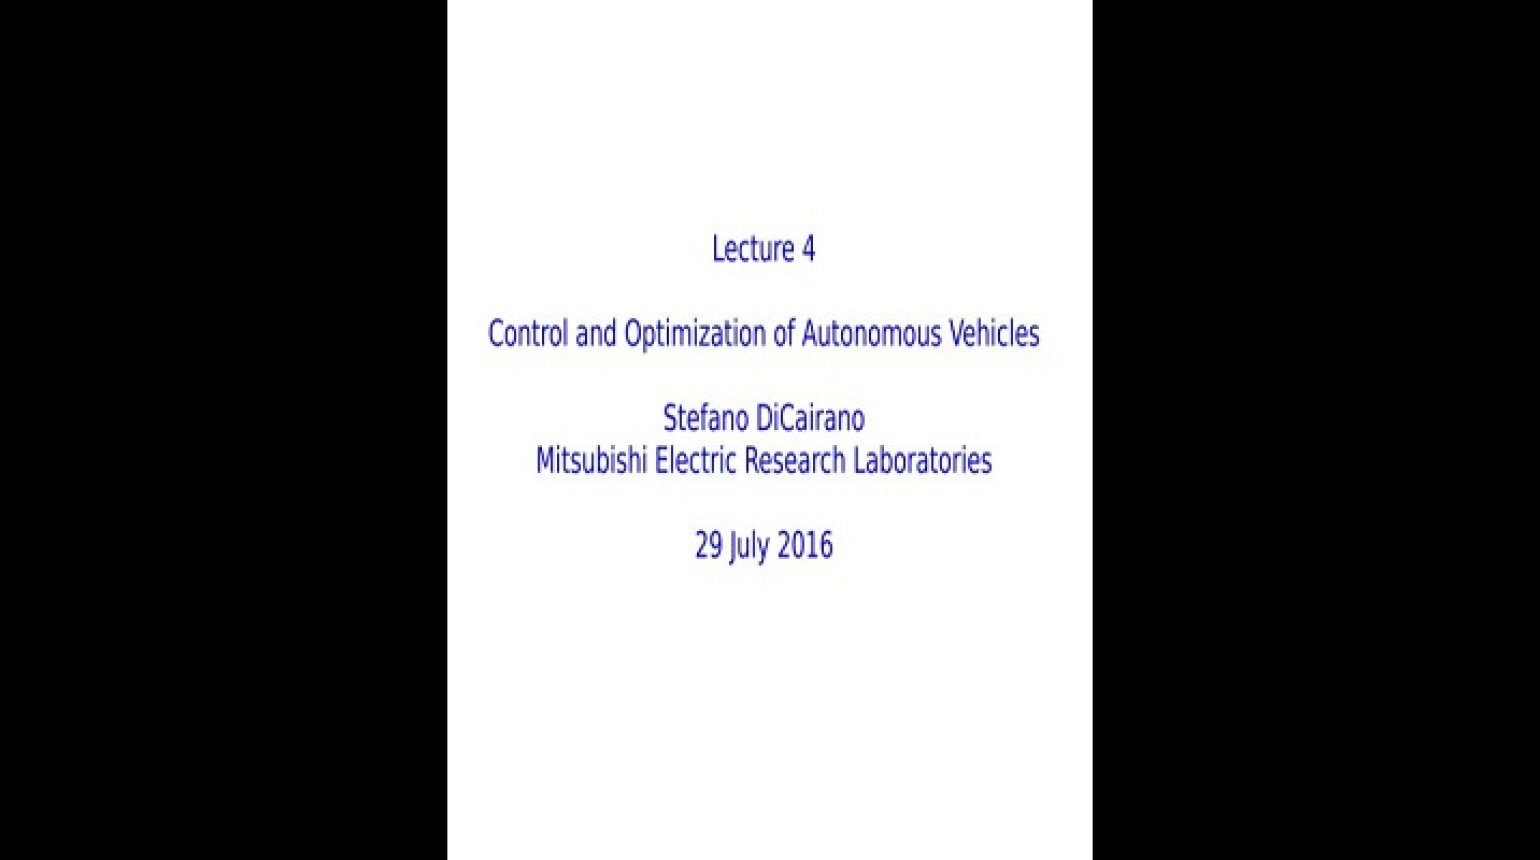 Video - Control and Optimization of Autonomous Vehicles